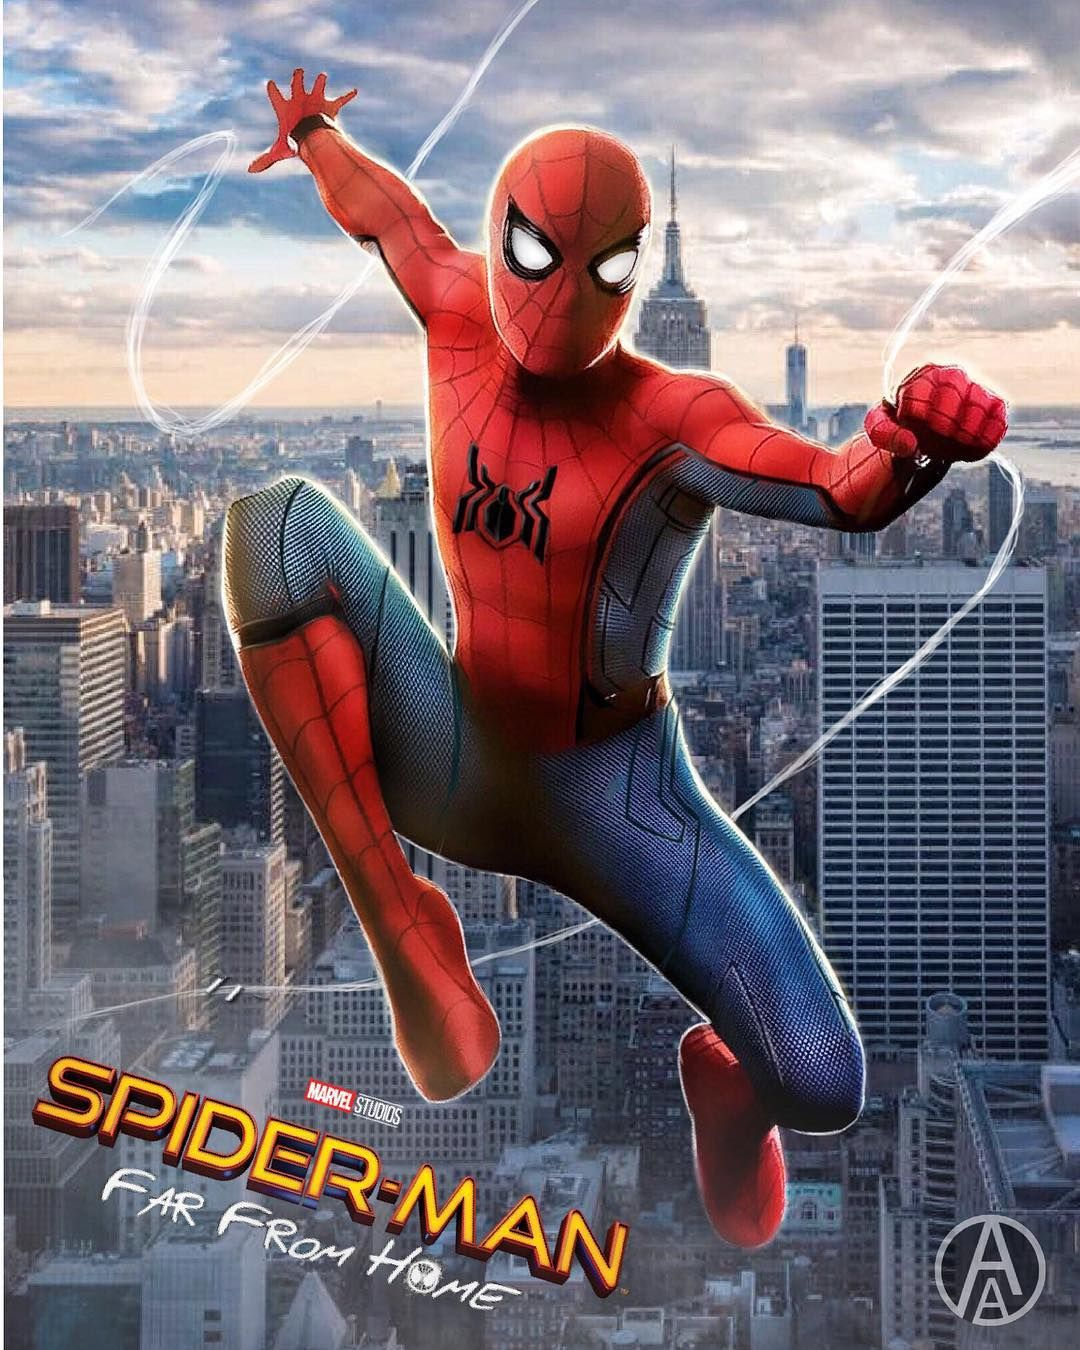 spiderman 2 far from home ! -im using the disneyland spidey suit